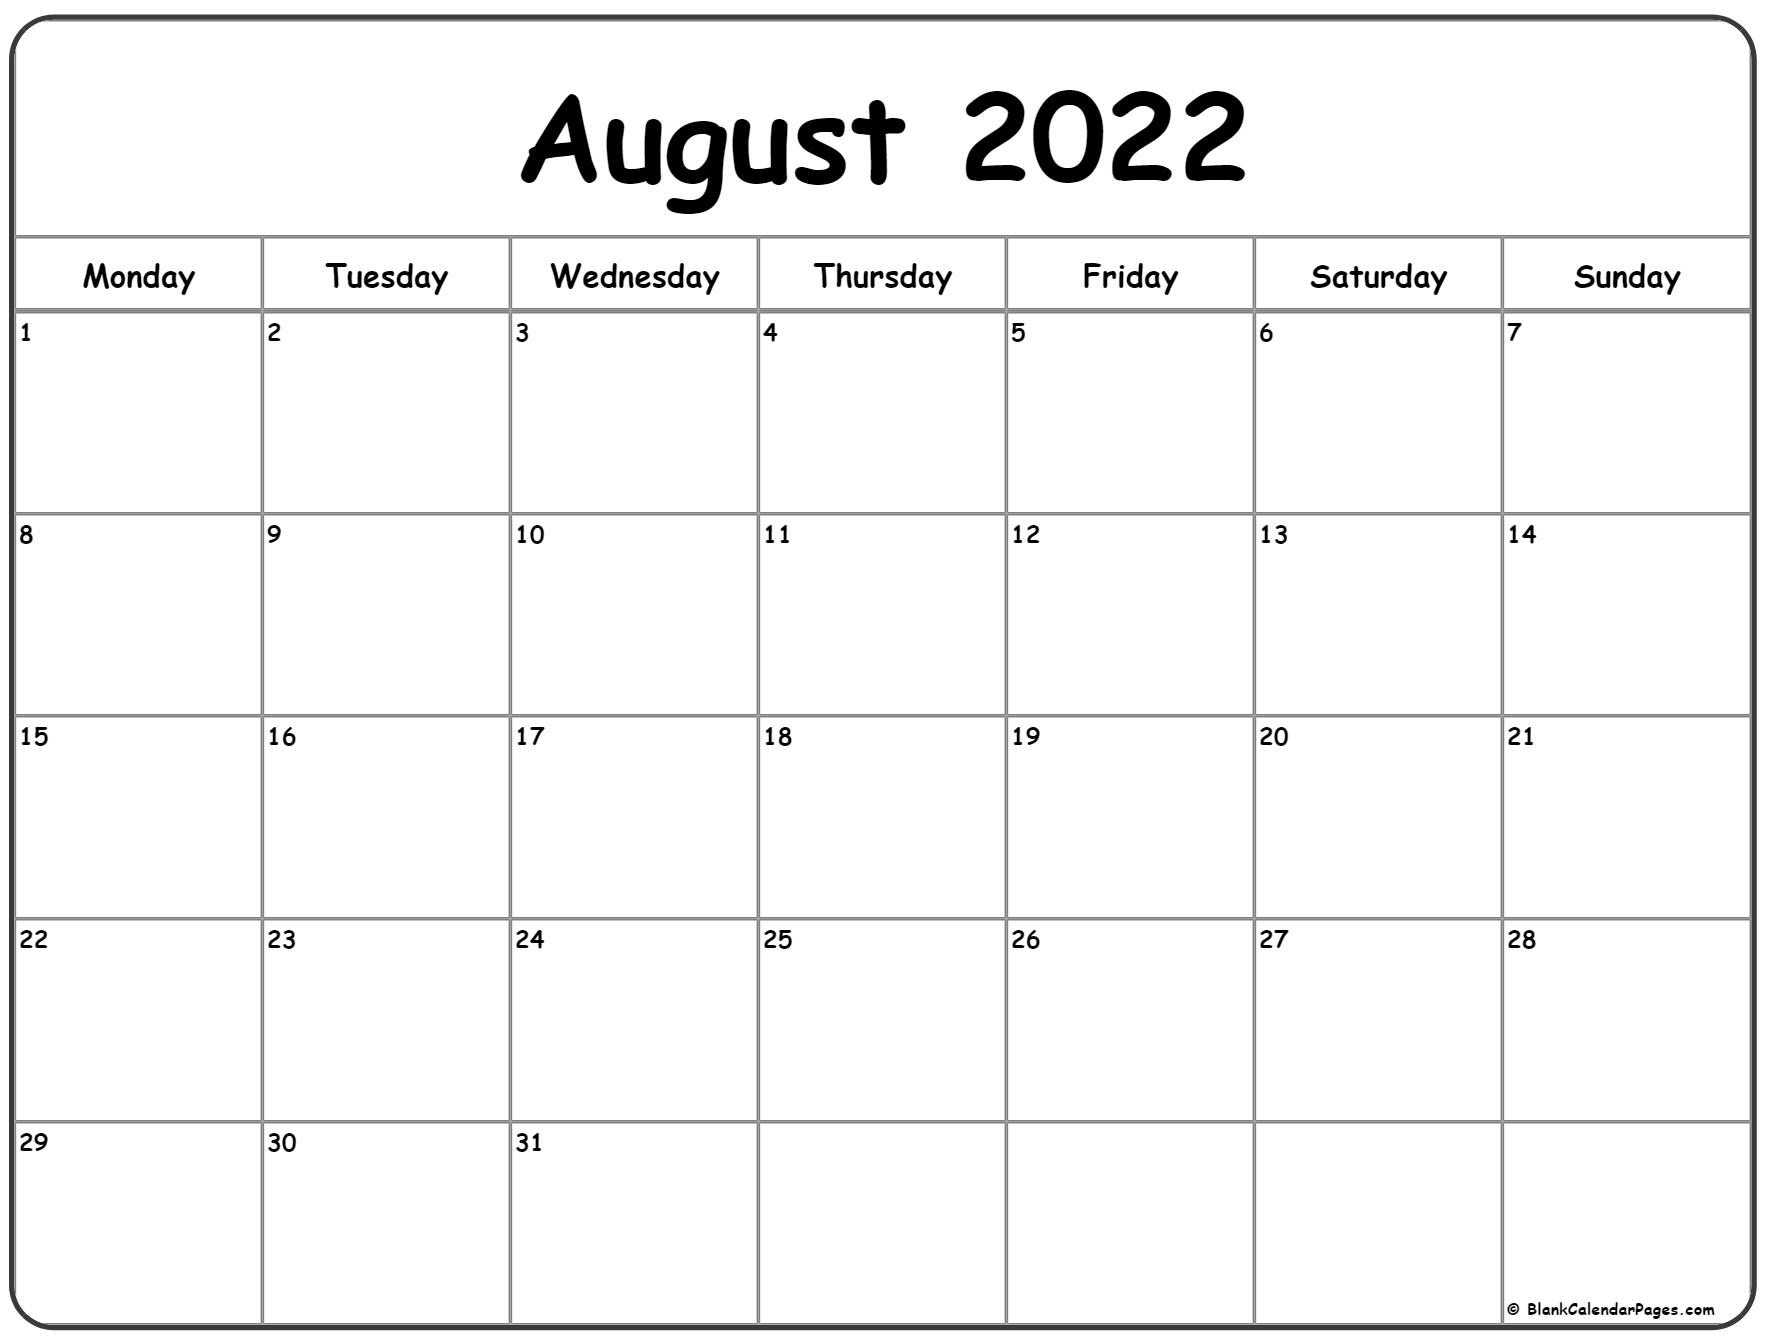 August 2022 Monday calendar. Monday to Sunday